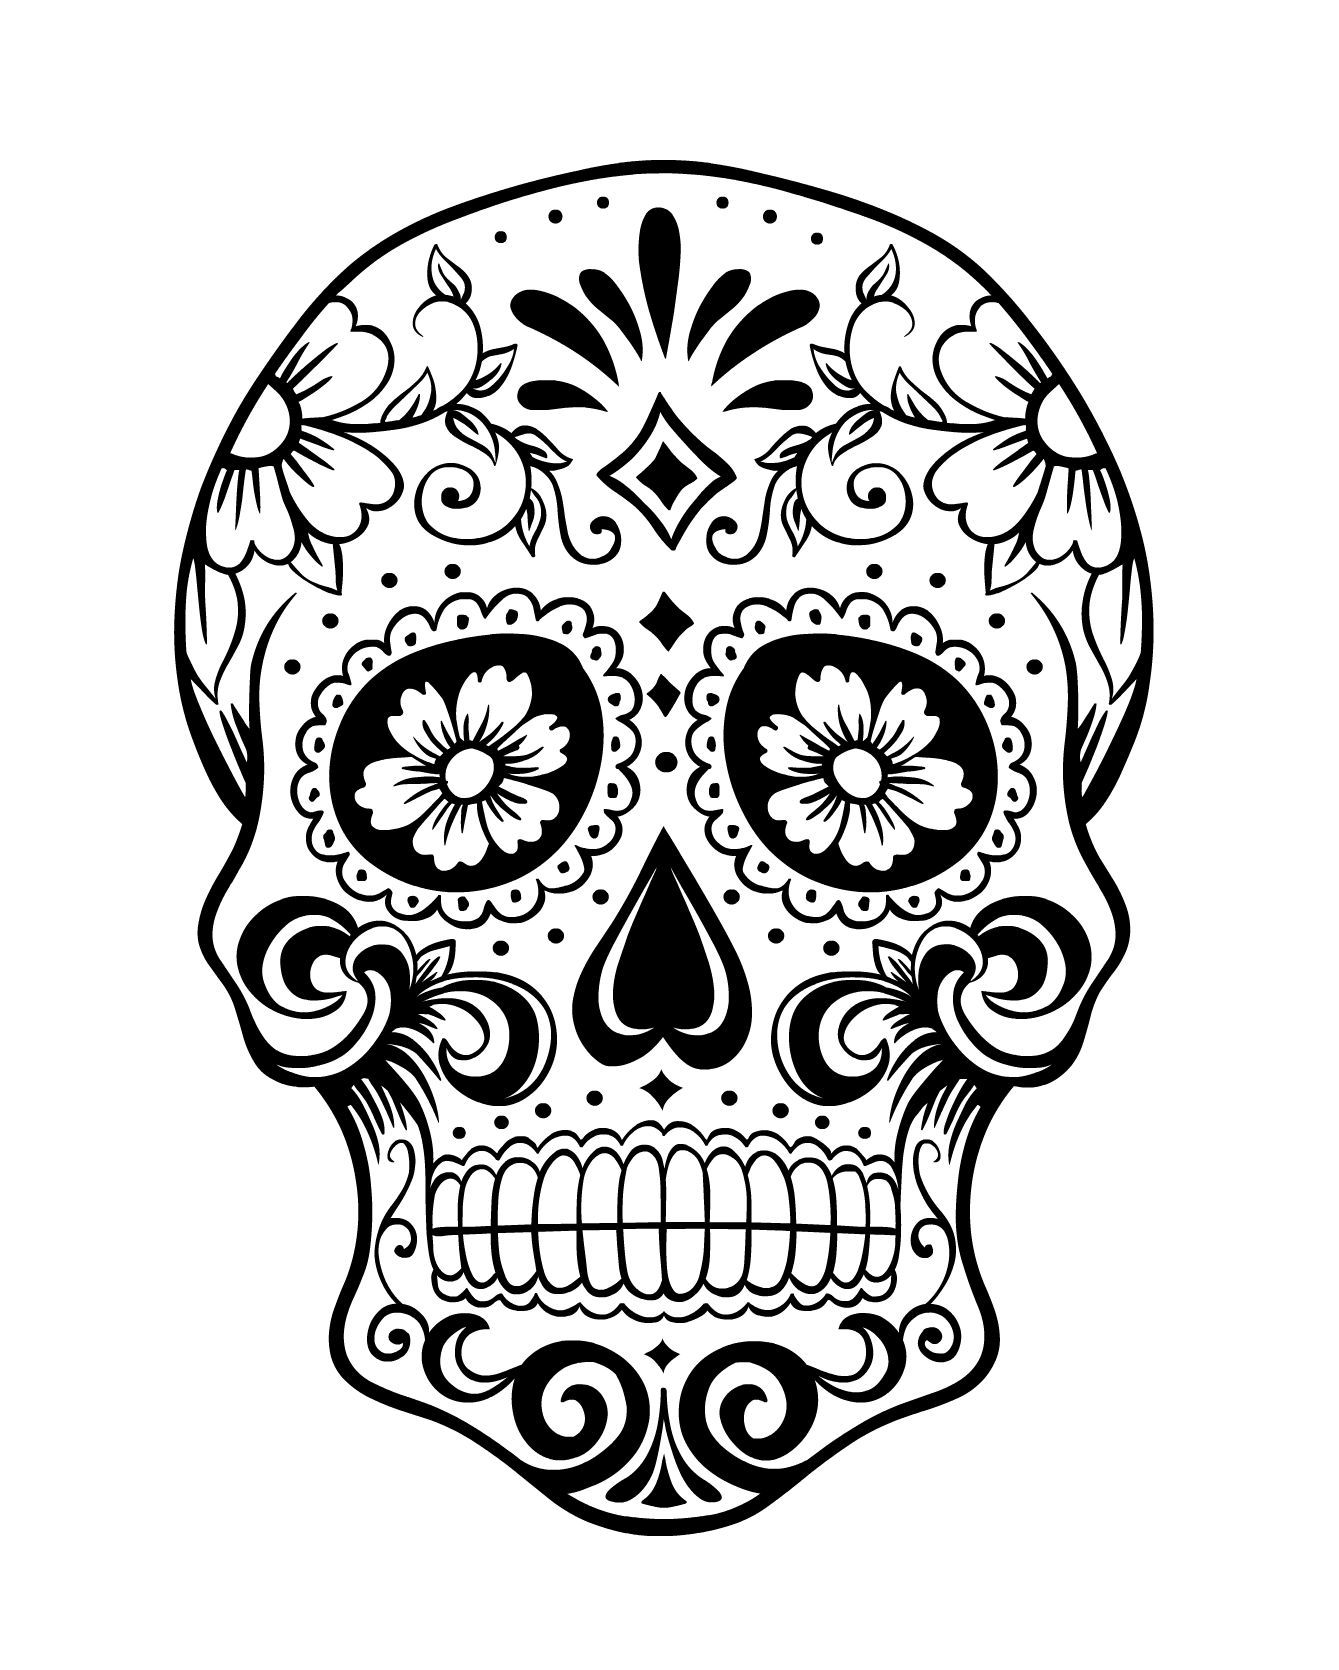 Free skull tattoo designs to print - Day Of The Dead Skull Coloring Page 1 Skull Tattoo Designskull